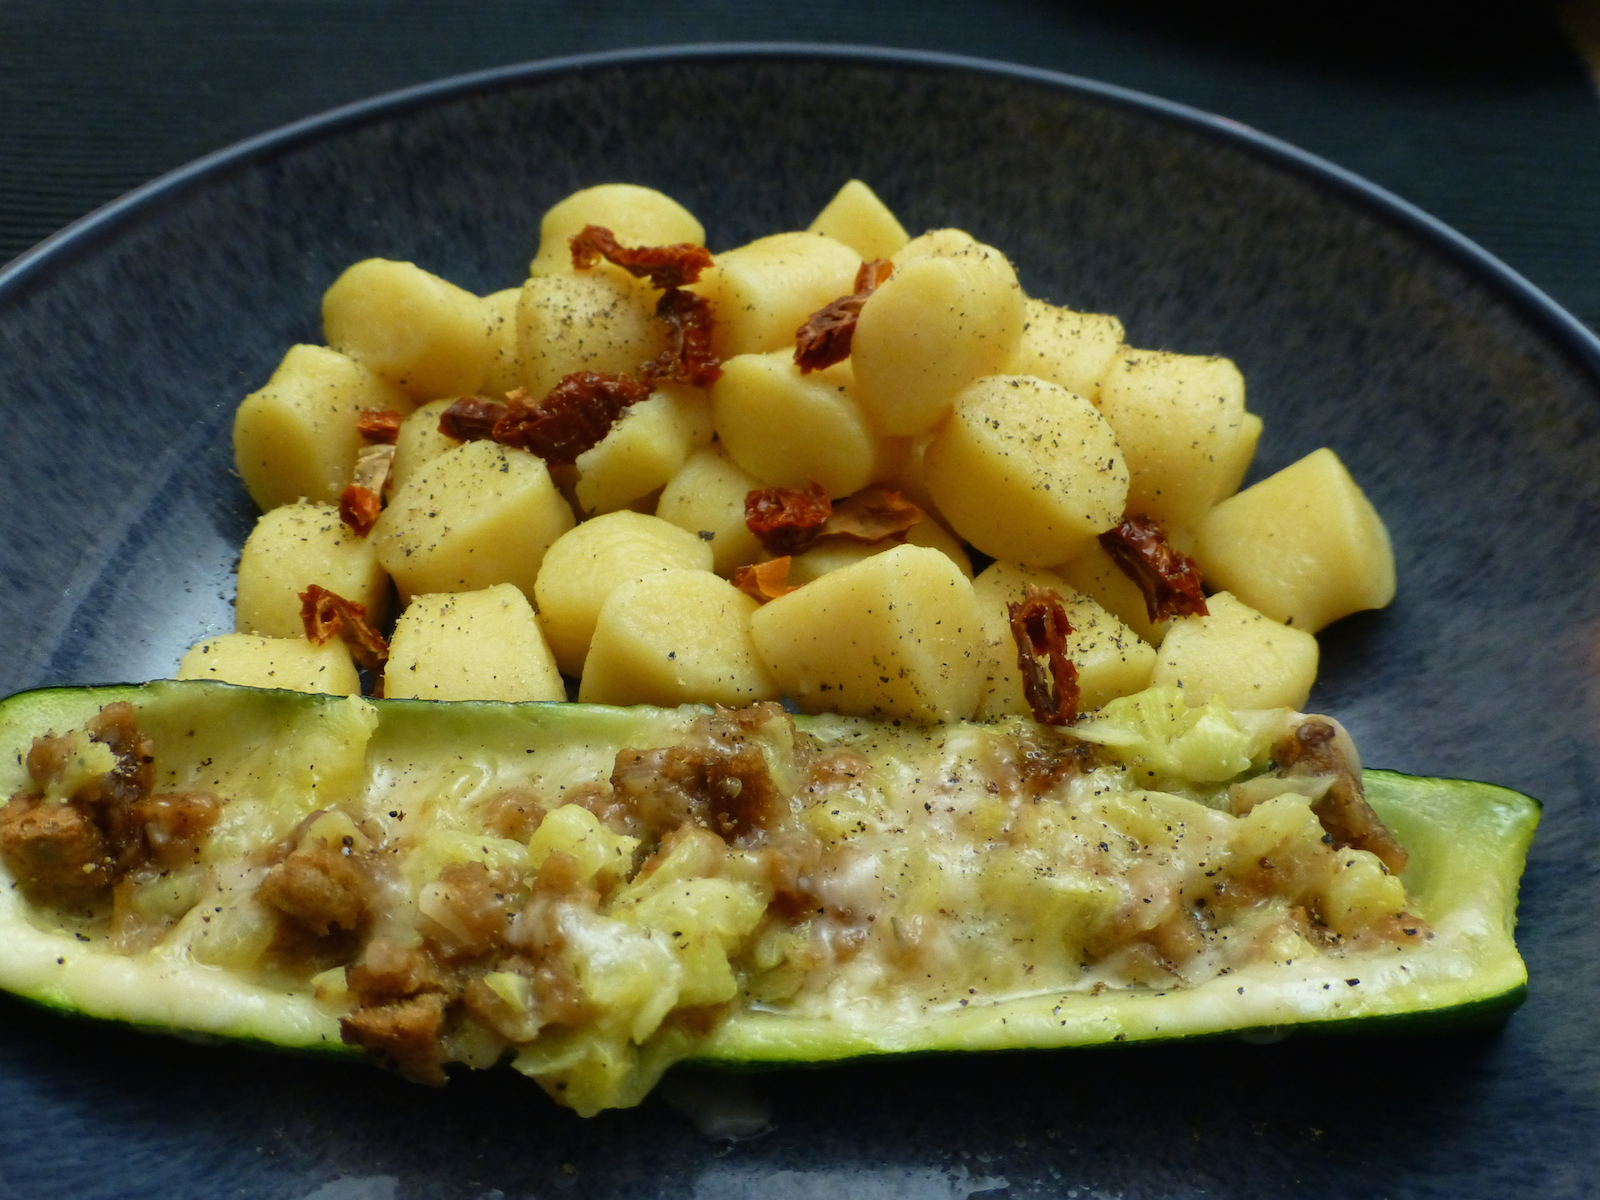 Stuffed courgettes with gnocchi